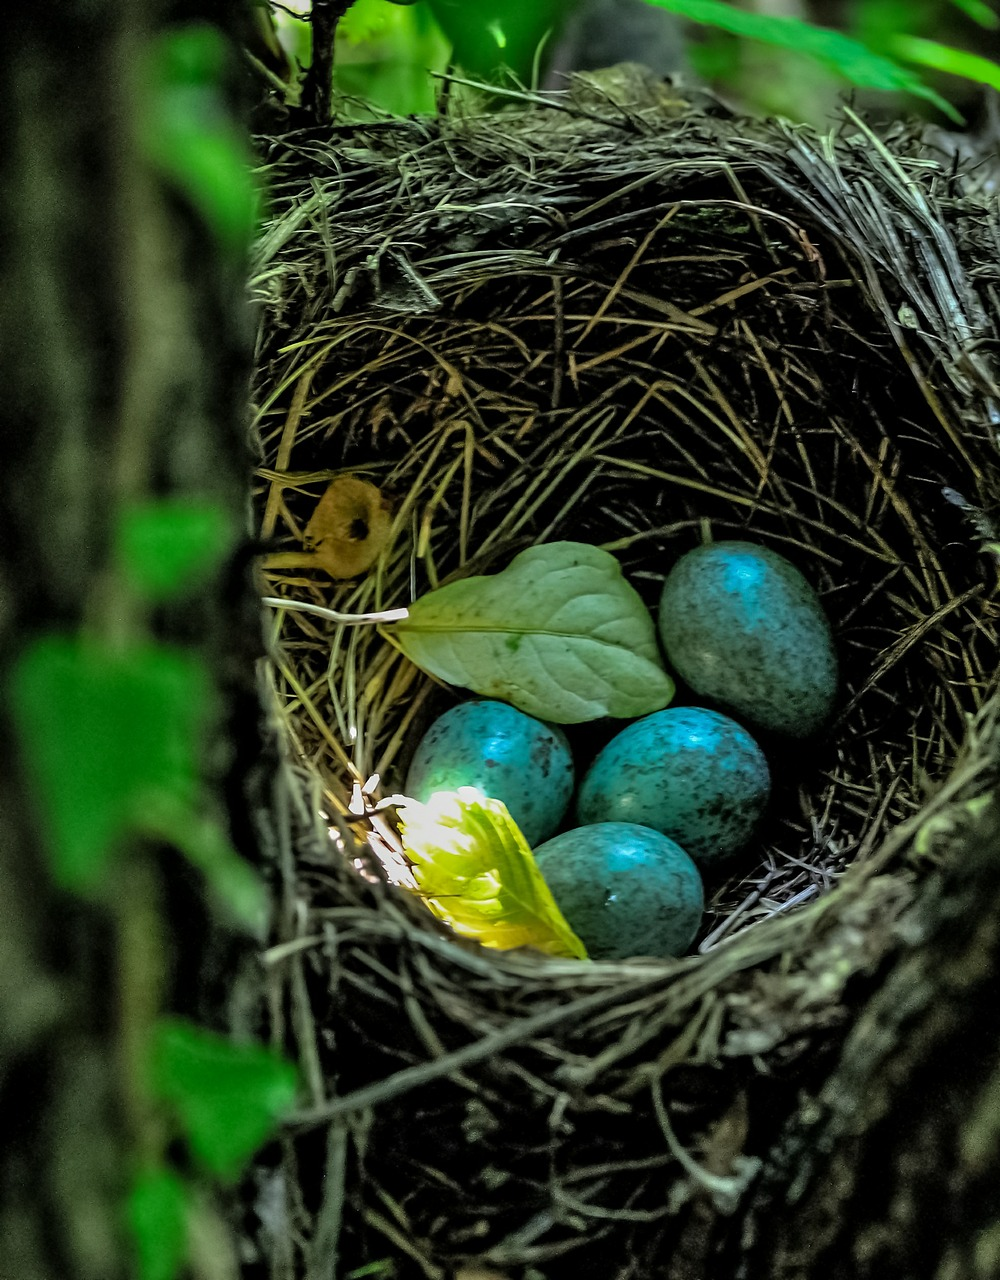 Birds nest blue eggs